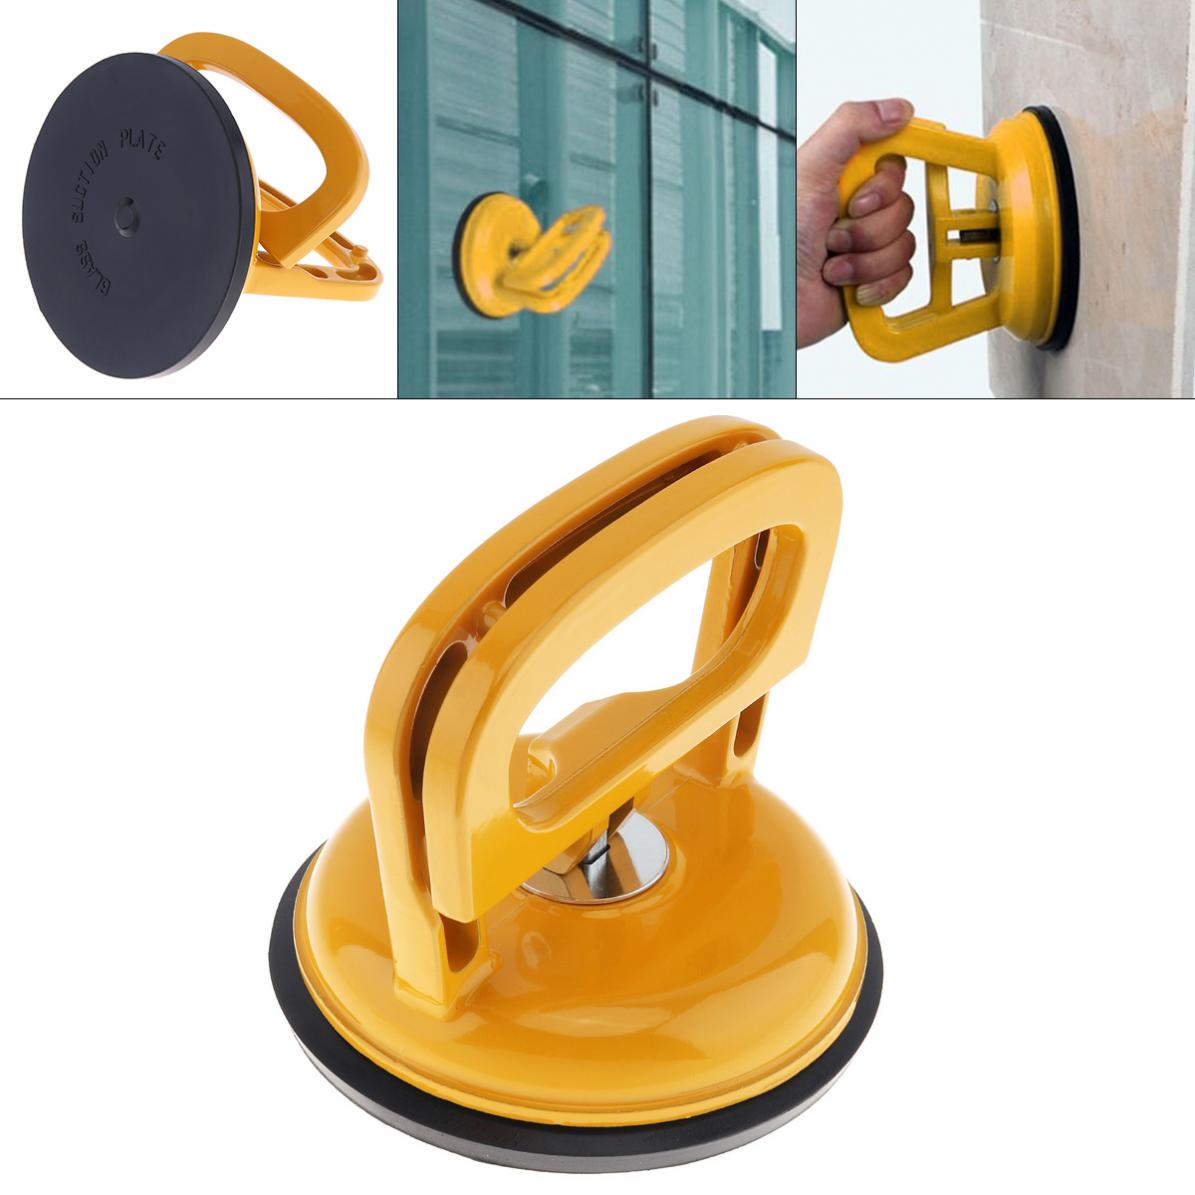 TL-F1 Aluminum Alloy Single Claw Vacuum Sucker with Rubber Suction Pad and 2 Clip Handles for Tiles Glass Lightweight LockingTL-F1 Aluminum Alloy Single Claw Vacuum Sucker with Rubber Suction Pad and 2 Clip Handles for Tiles Glass Lightweight Locking